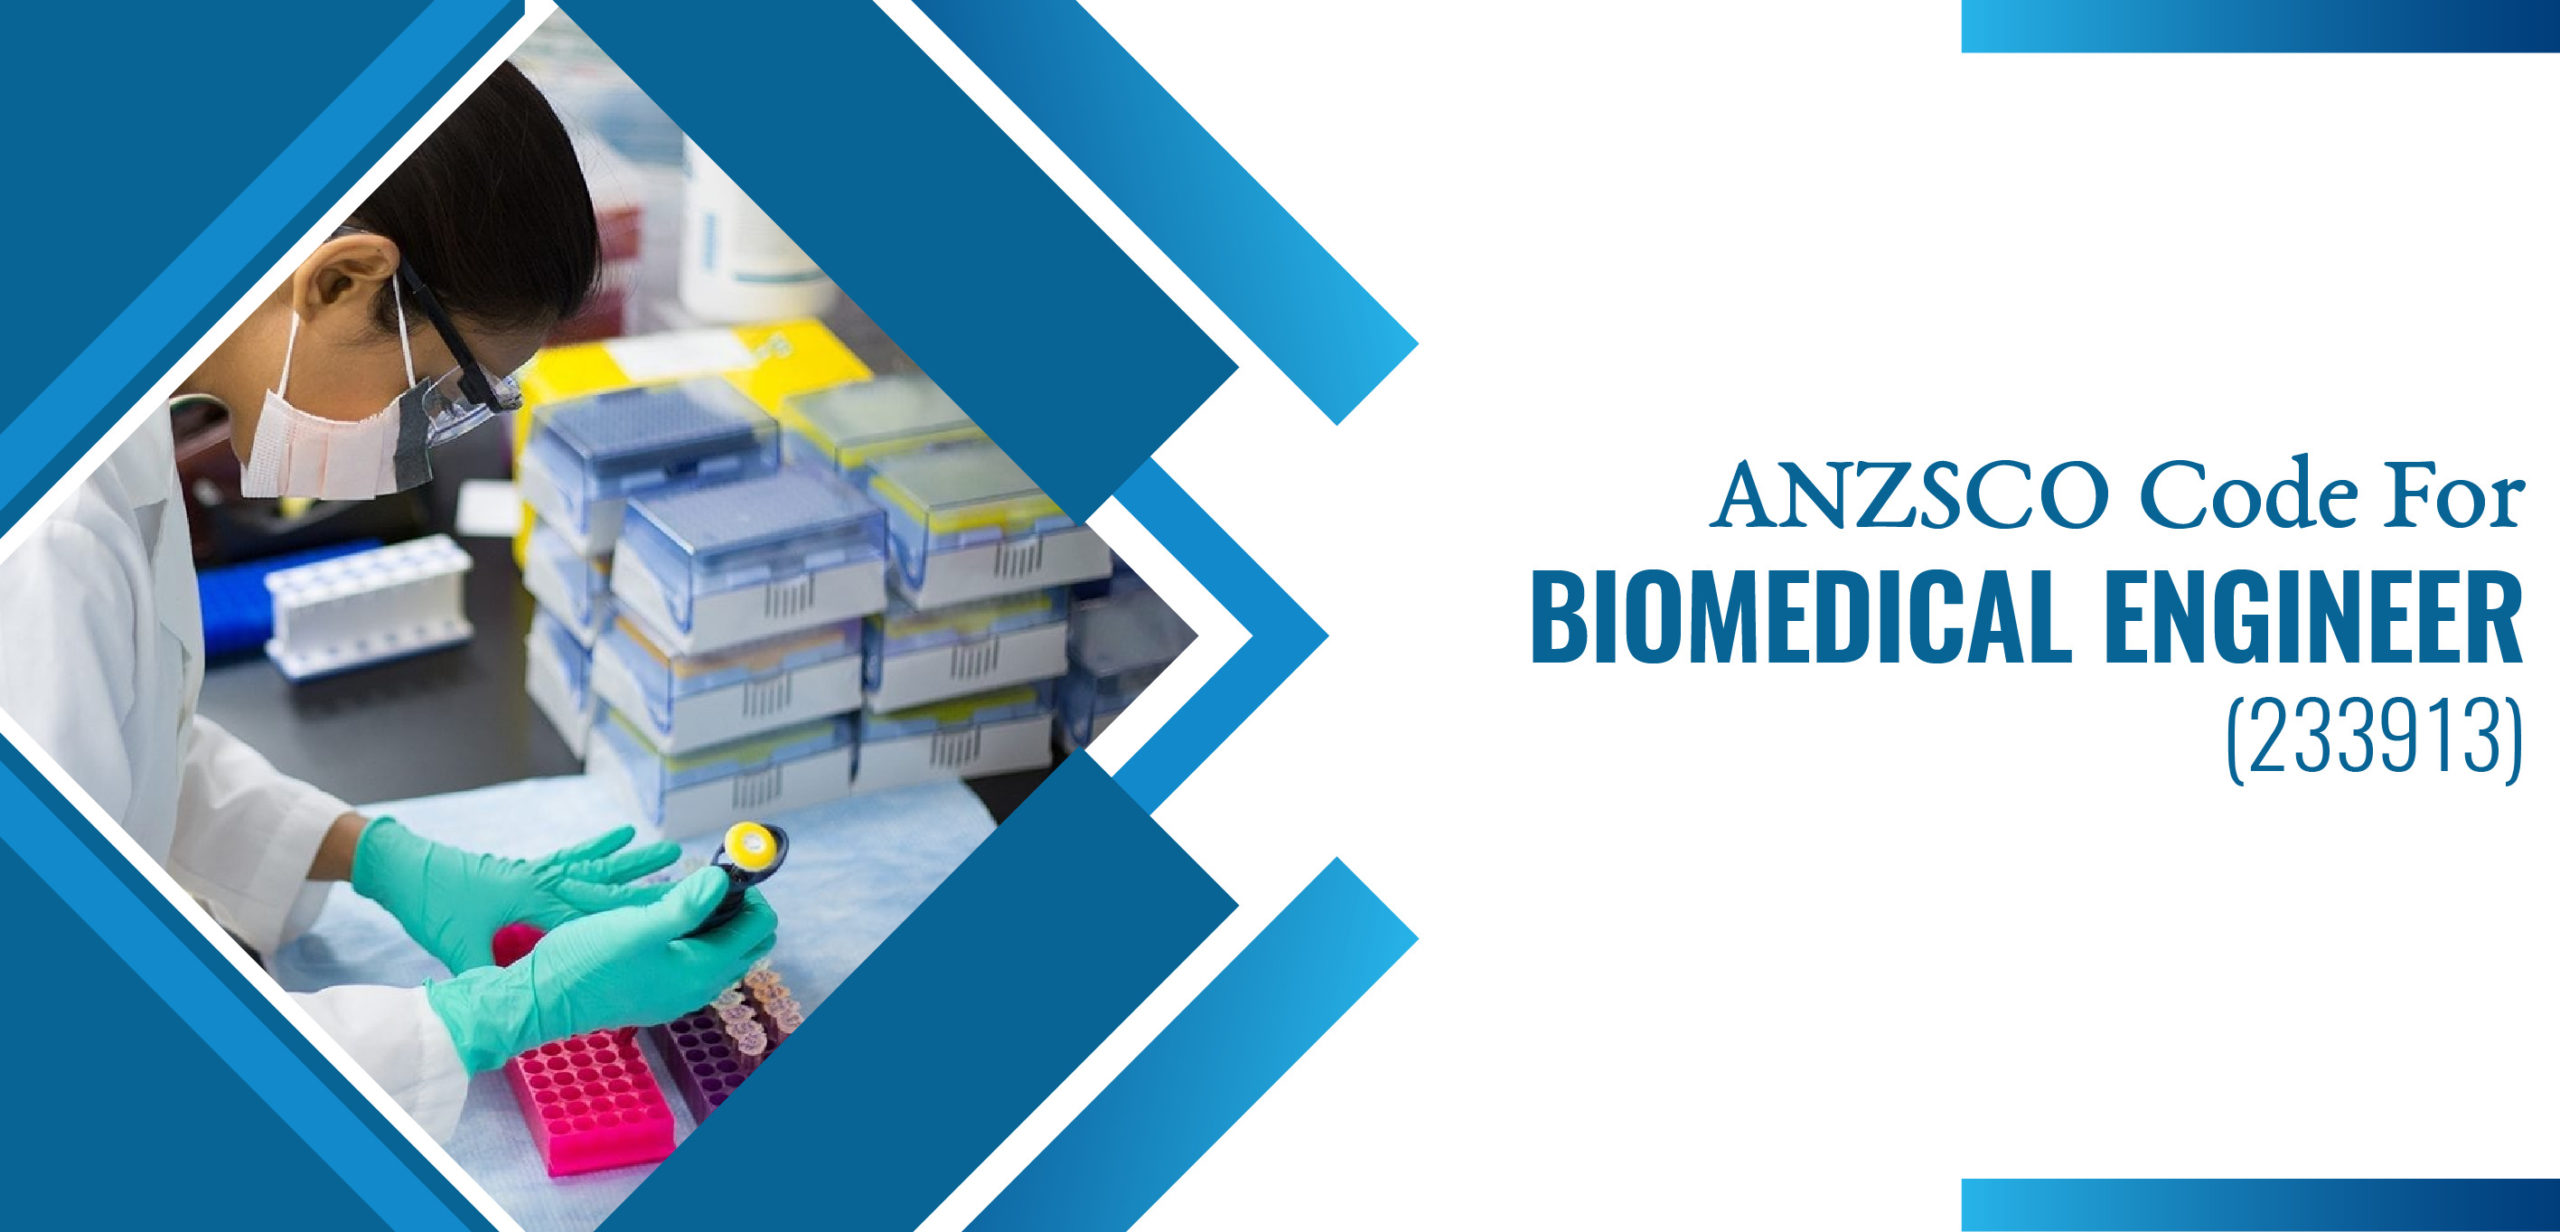 ANZSCO Code for Biomedical Engineer